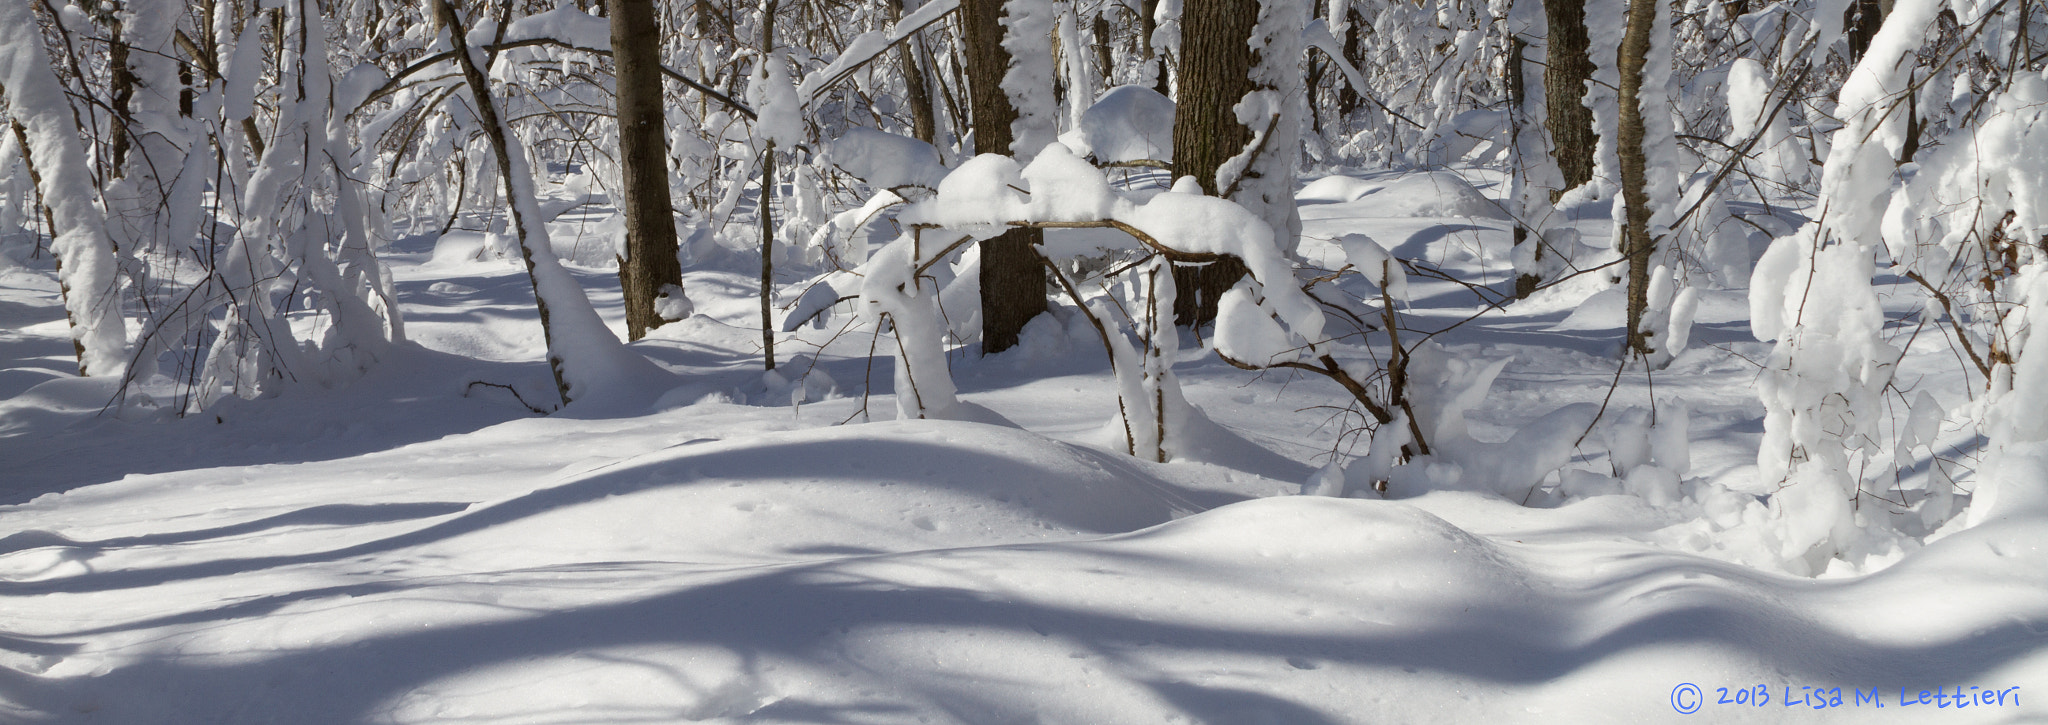 Photograph Blizzard of 2013 by Lisa Lettieri on 500px